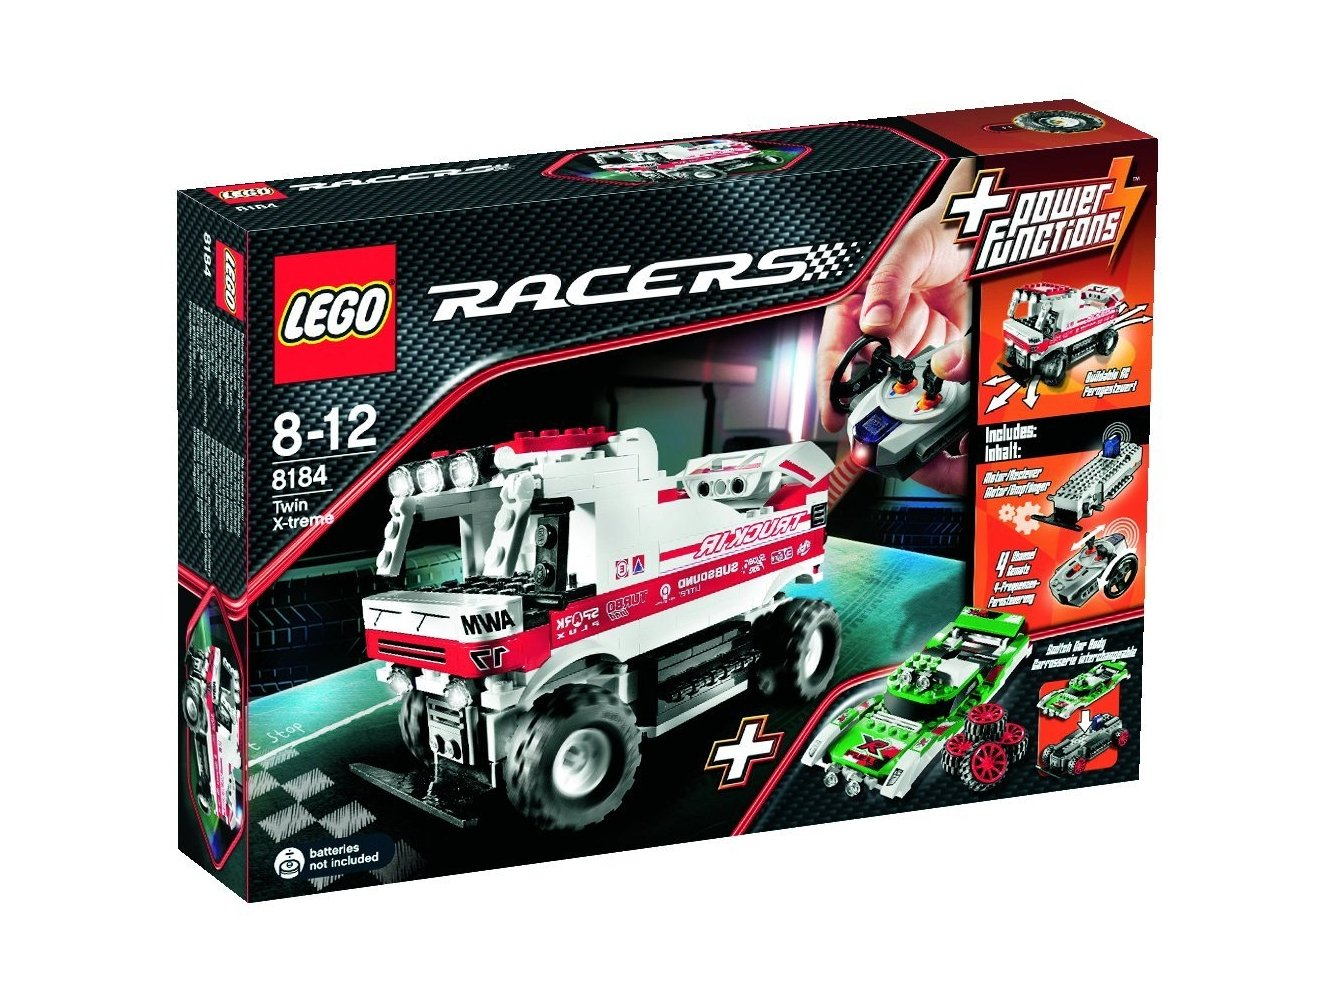 LEGO Racers 8184 Twin X-treme RC